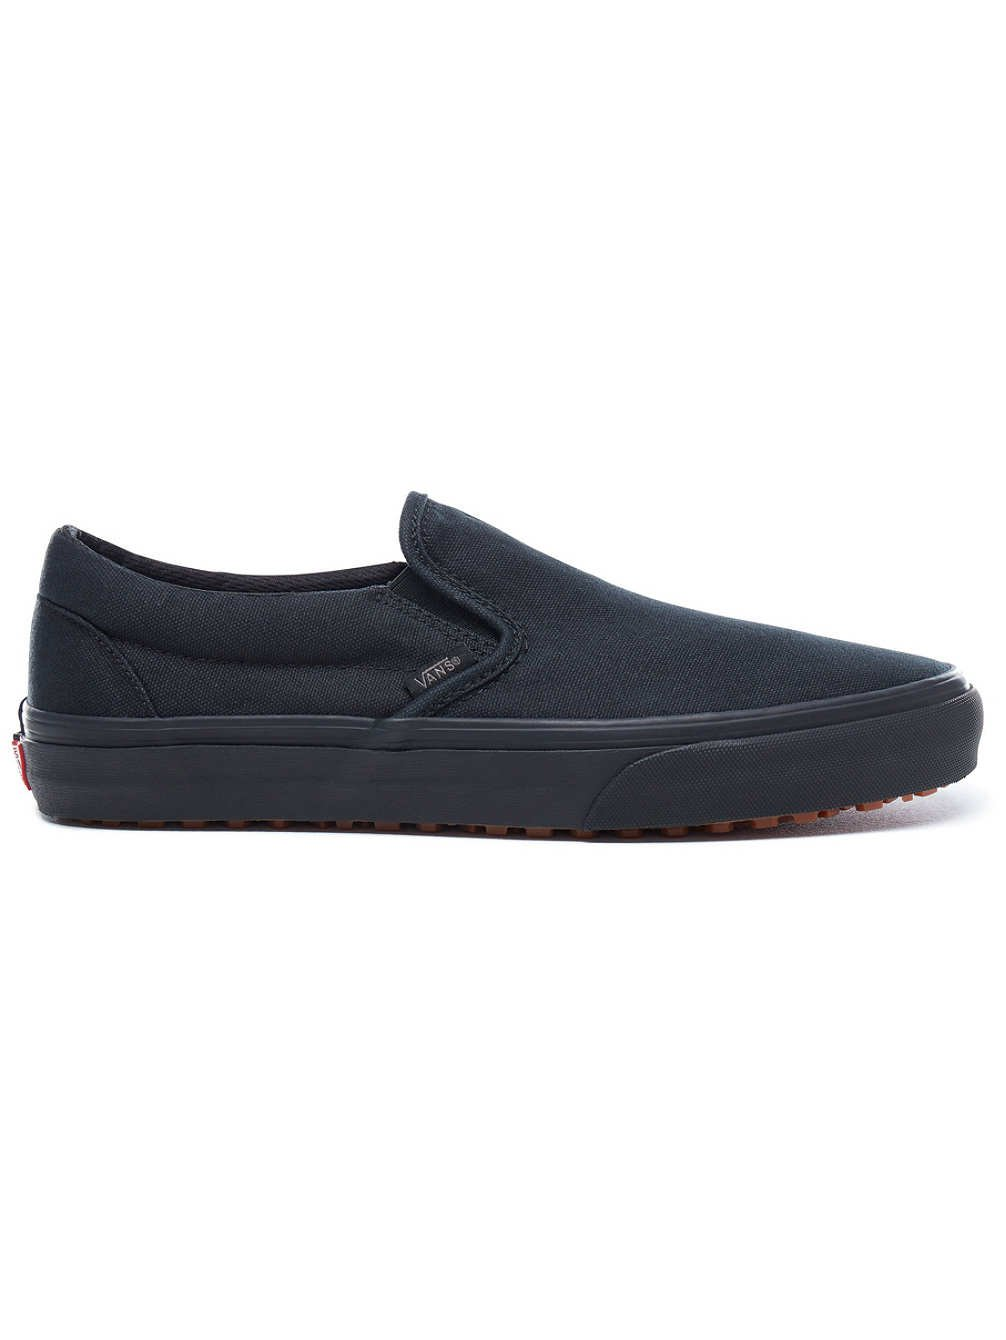 a496abda52538c Amazon.com  Vans Men Classic Slip-On UC - Made for The Makers (Black)  Shoes